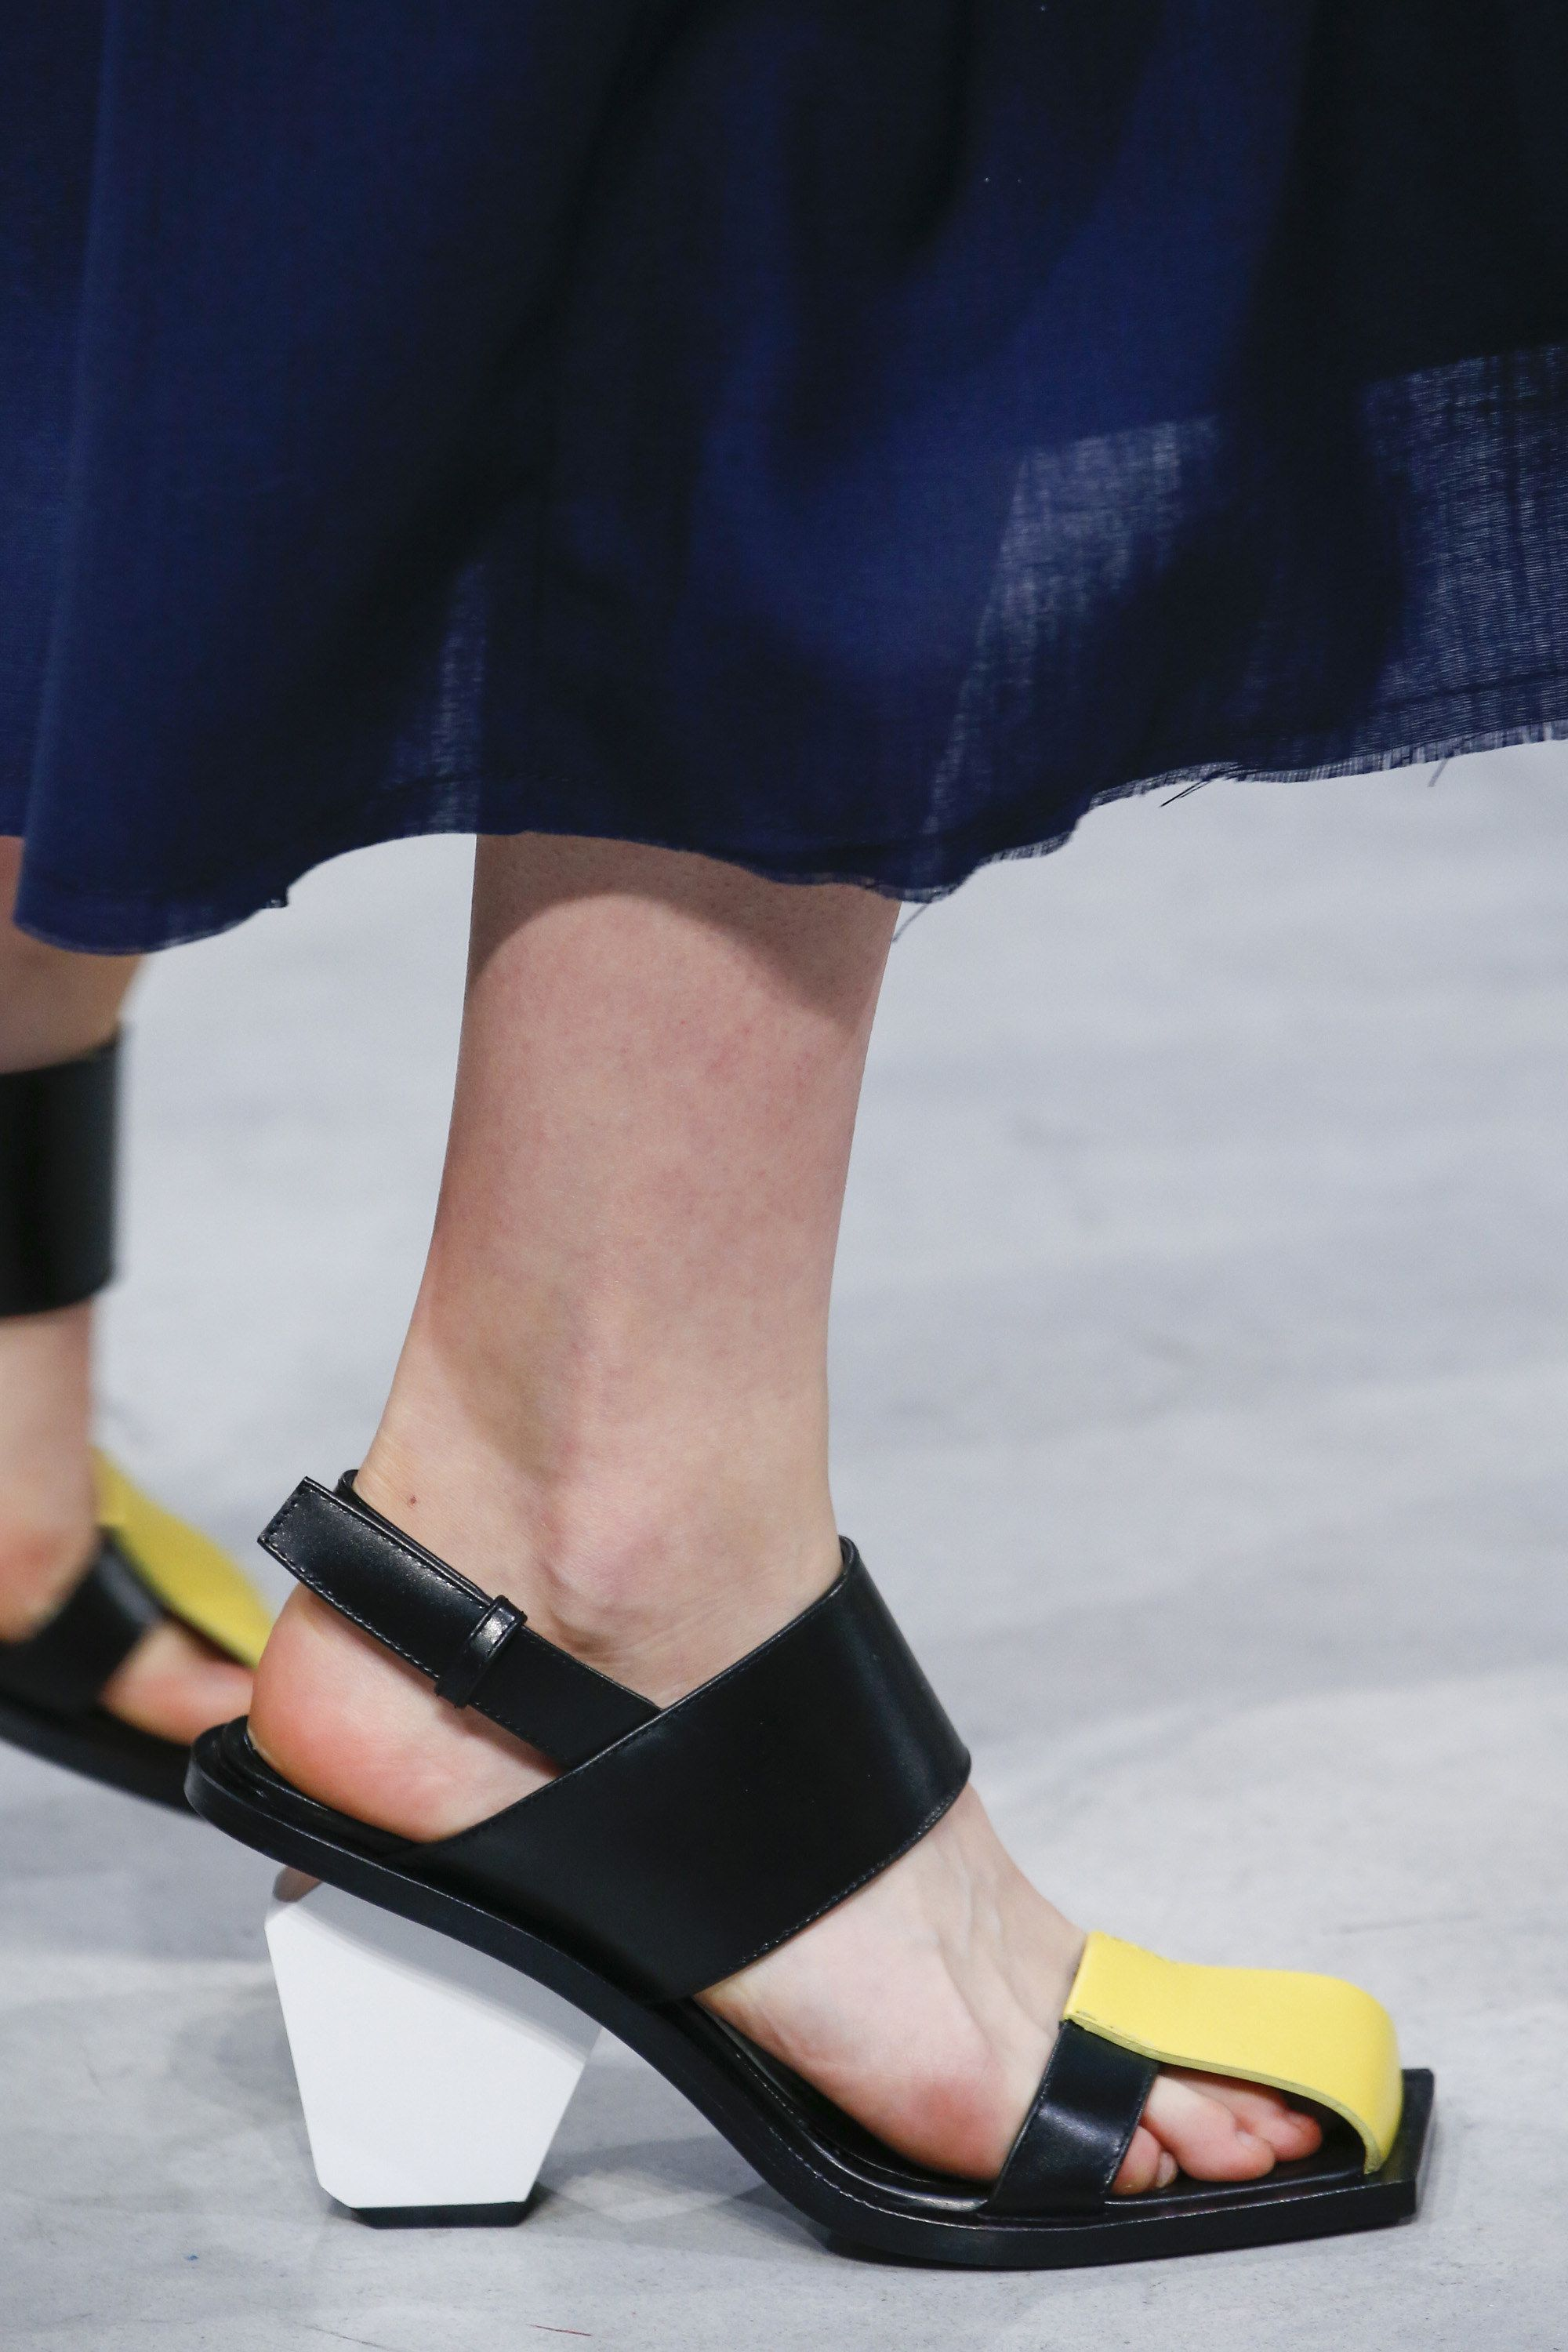 Marni Spring 2016 Ready-to-Wear Fashion Show | Shoes ...